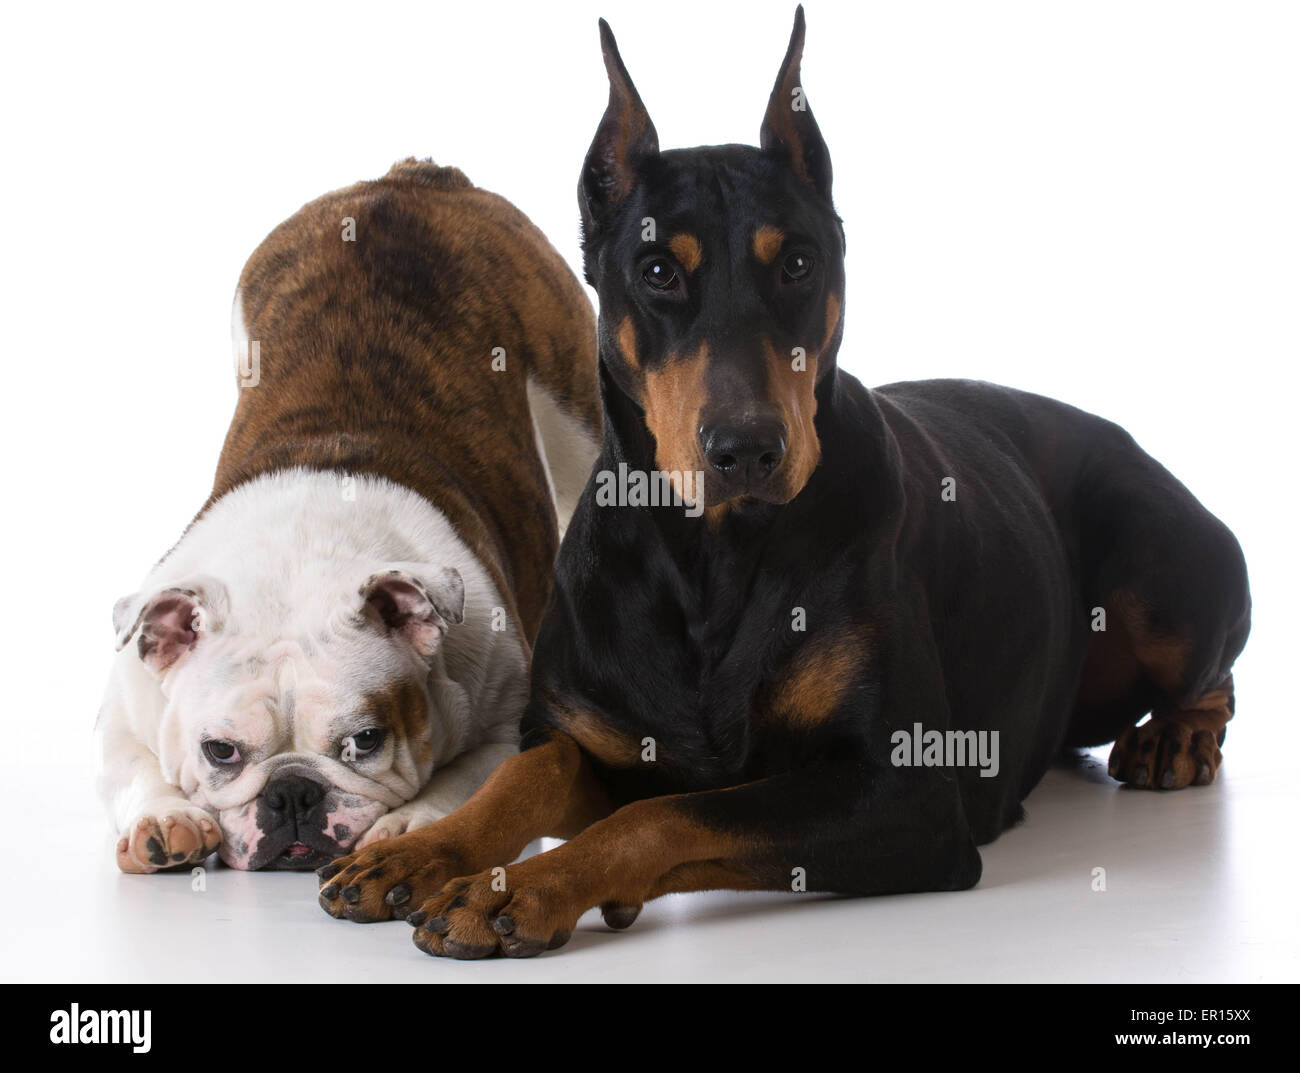 two dogs - bulldog and doberman together on white background - Stock Image